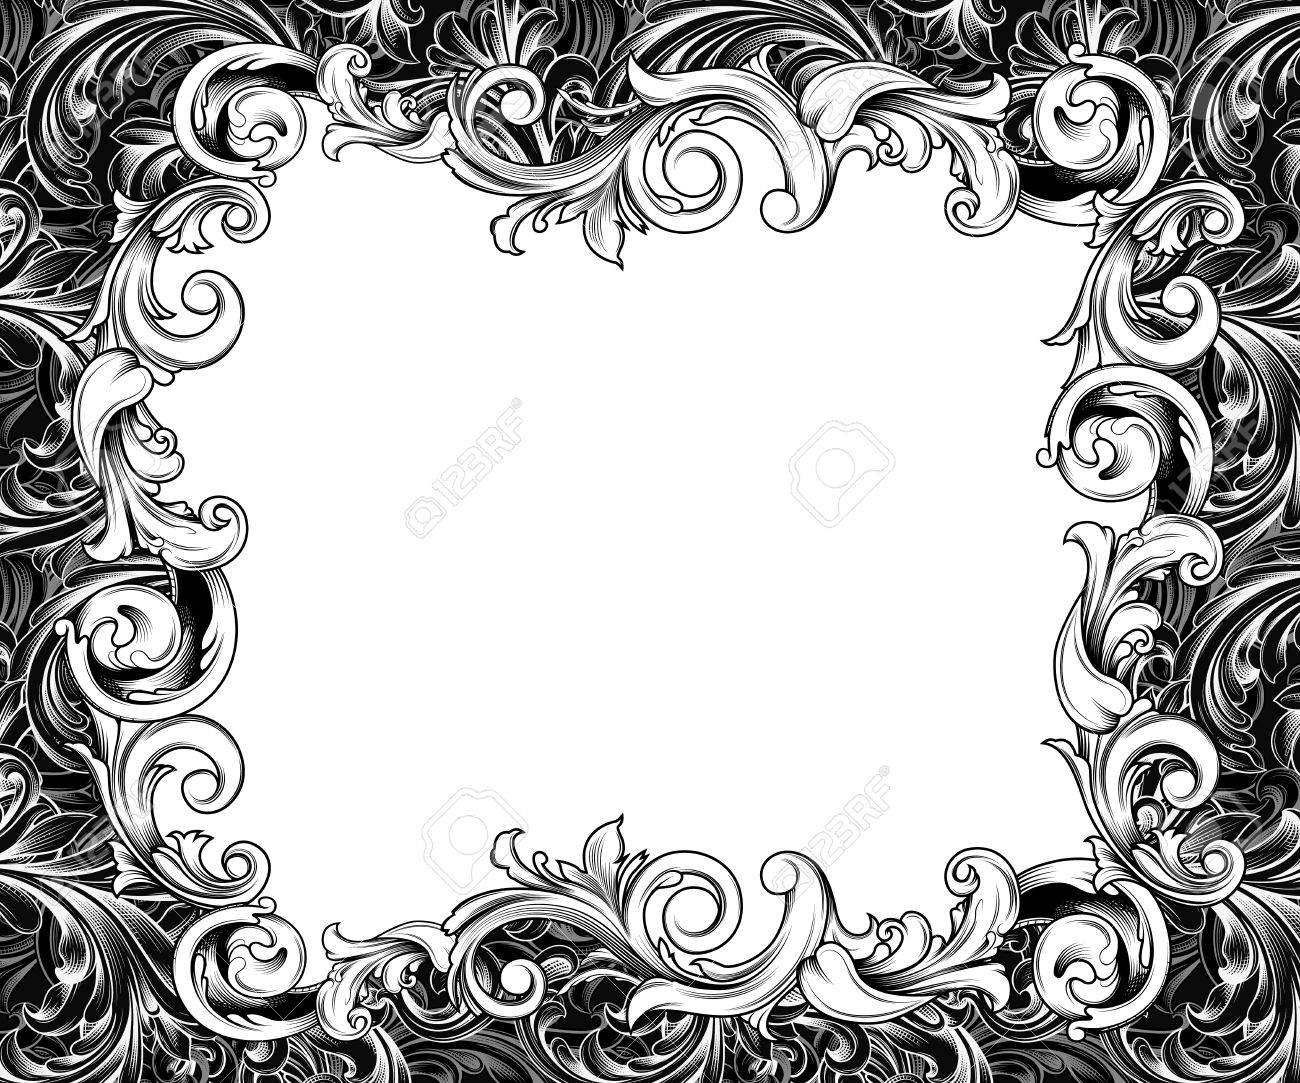 ornate baroque or rococo frame of hand drawn engraved flourishes stock photo 33876892